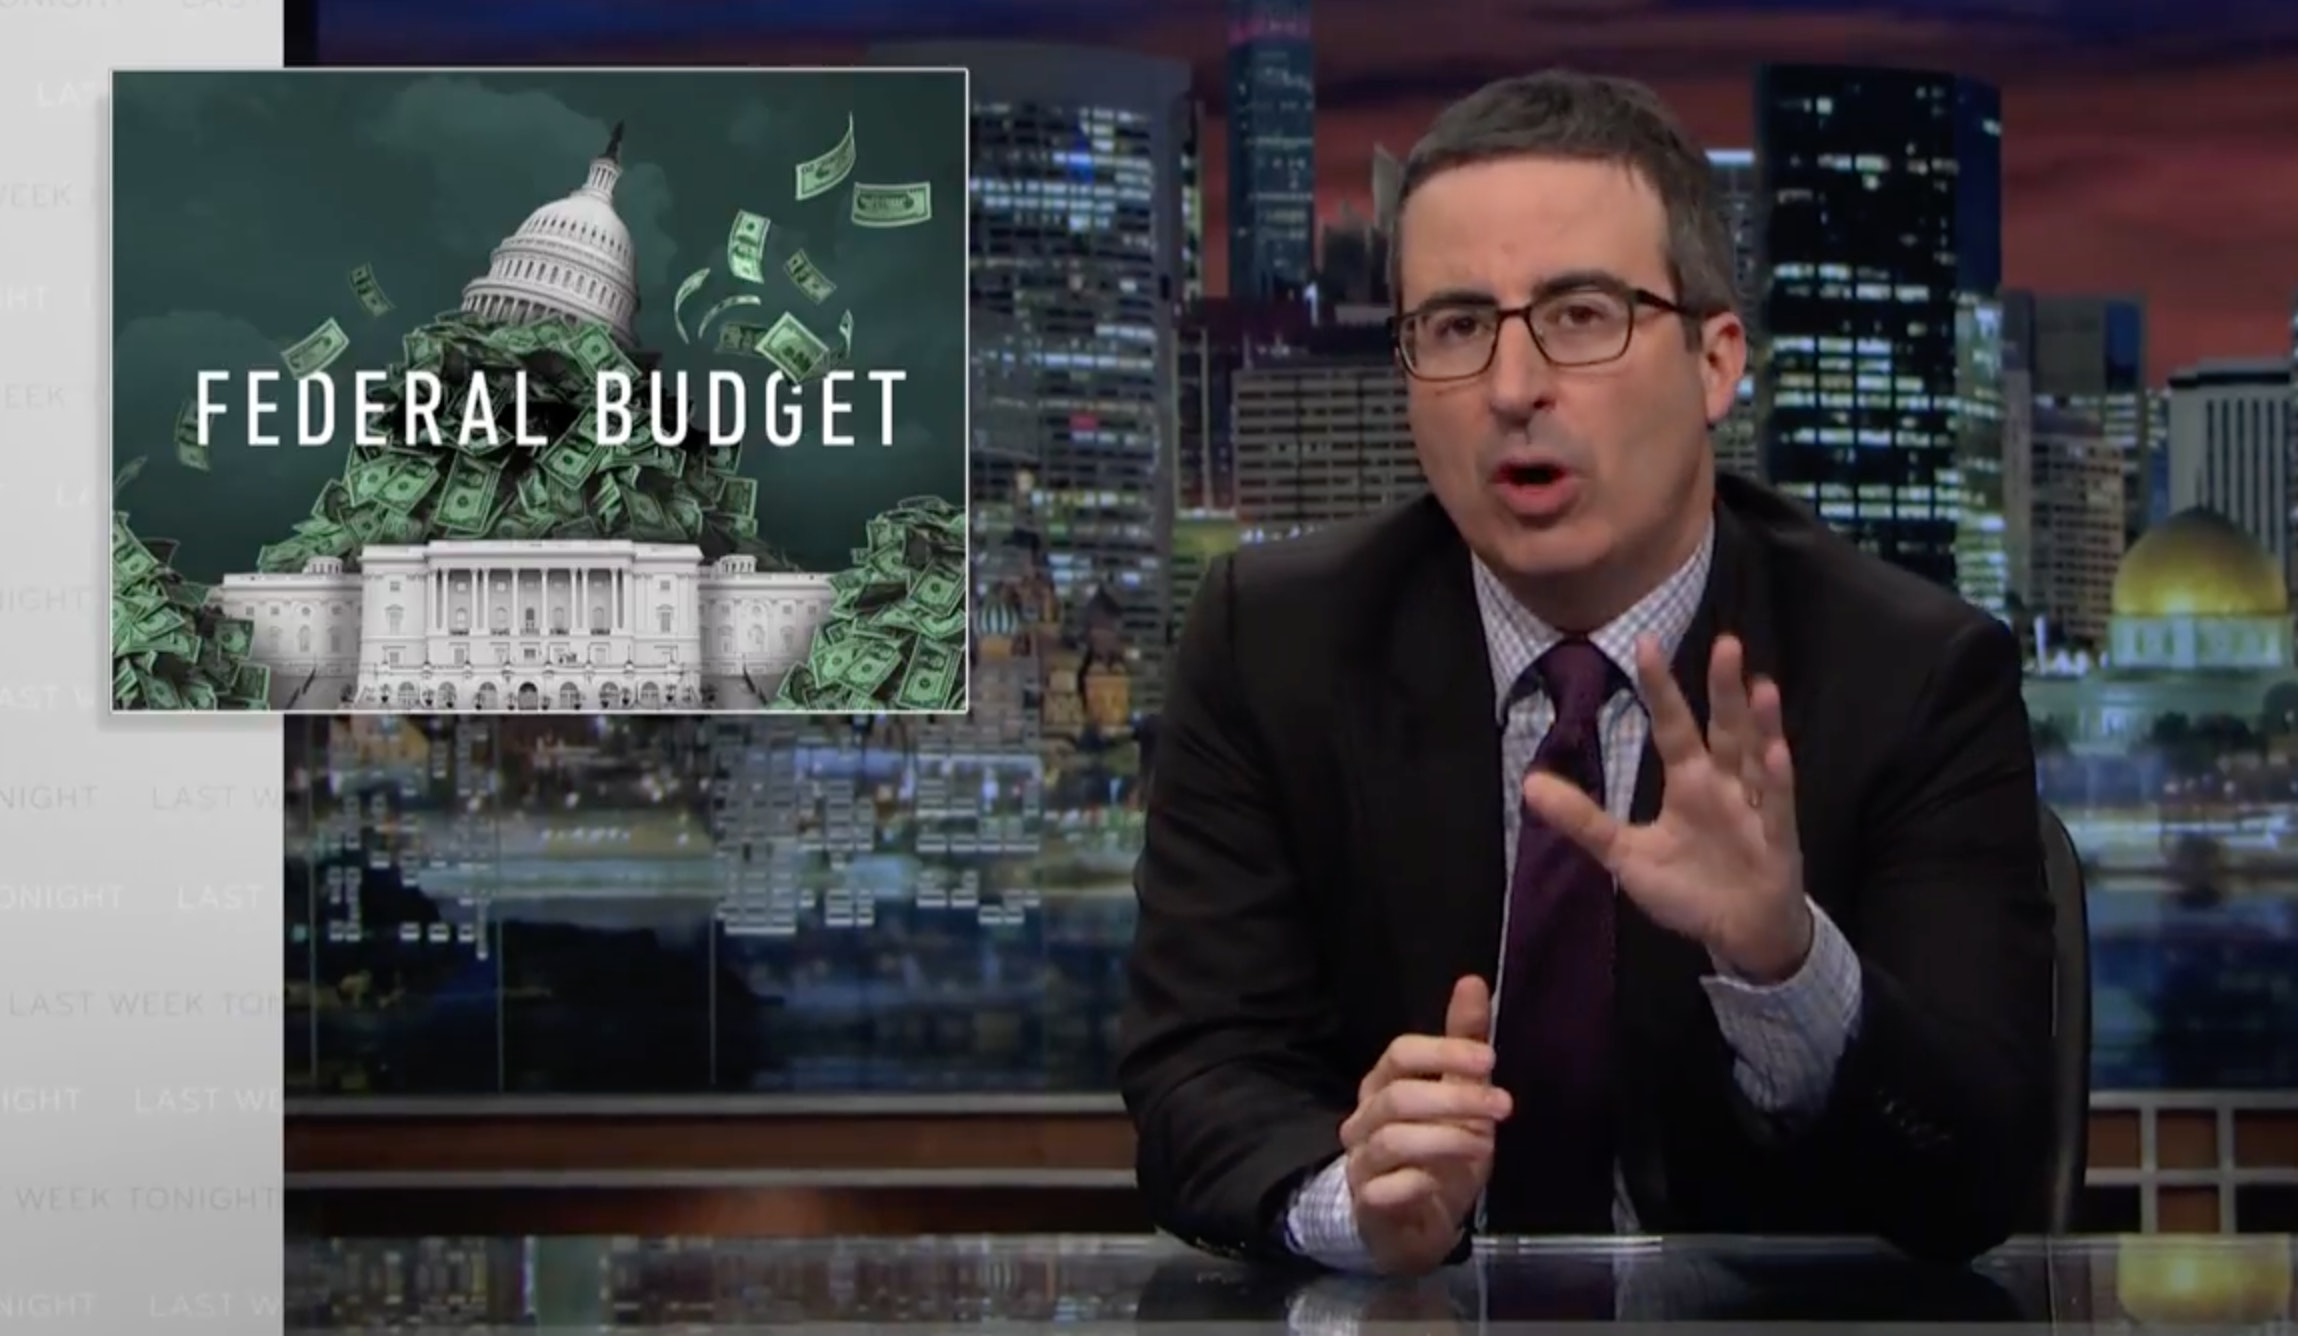 John Oliver on Trump's budget cuts: 'impatient, vain and horny for malice'